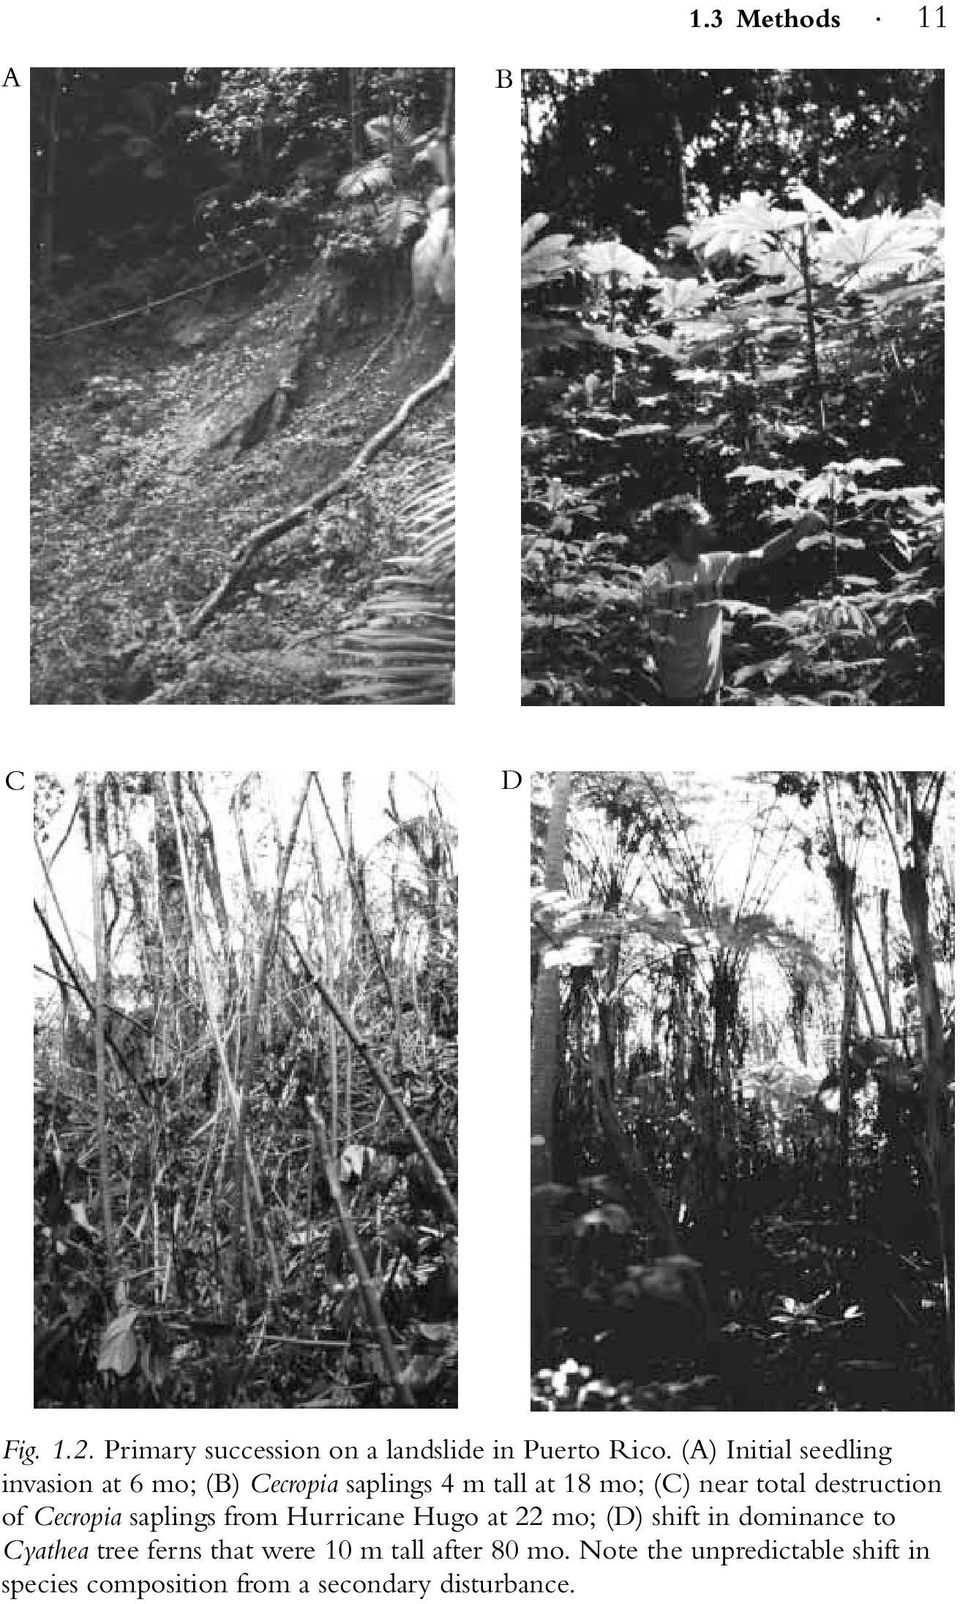 destruction of Cecropia saplings from Hurricane Hugo at 22 mo; (D) shift in dominance to Cyathea